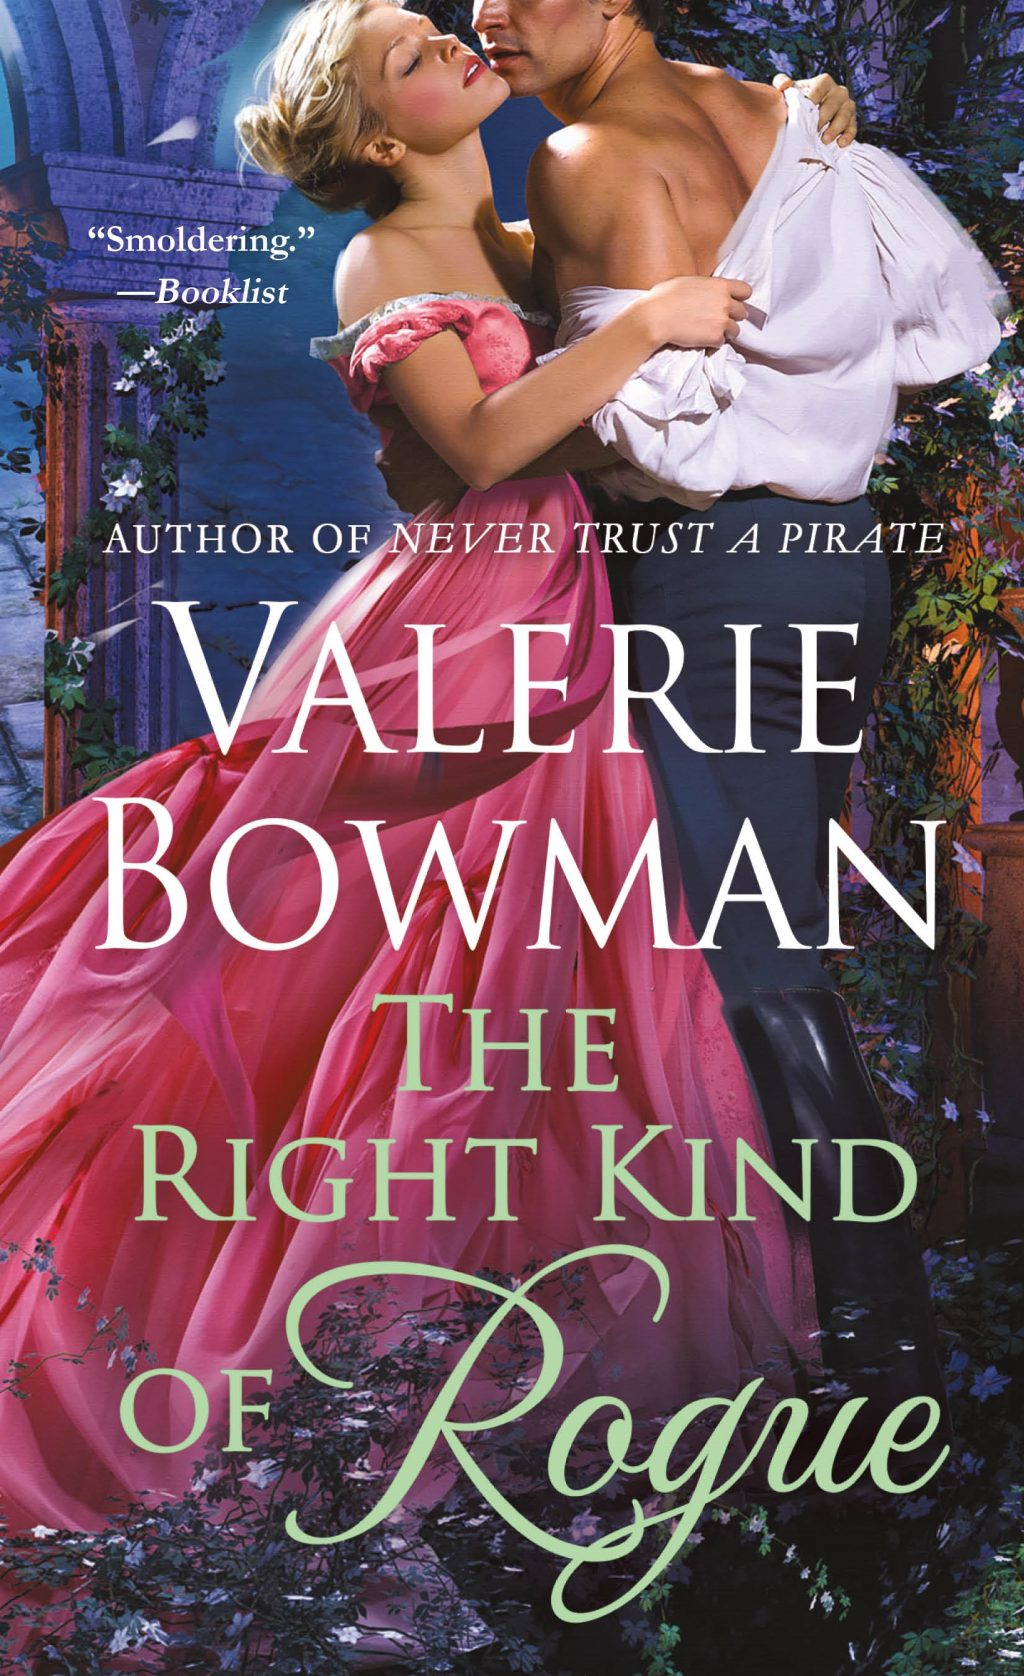 The Right Kind of Rogue (Playful Brides #8) by Valerie Bowman